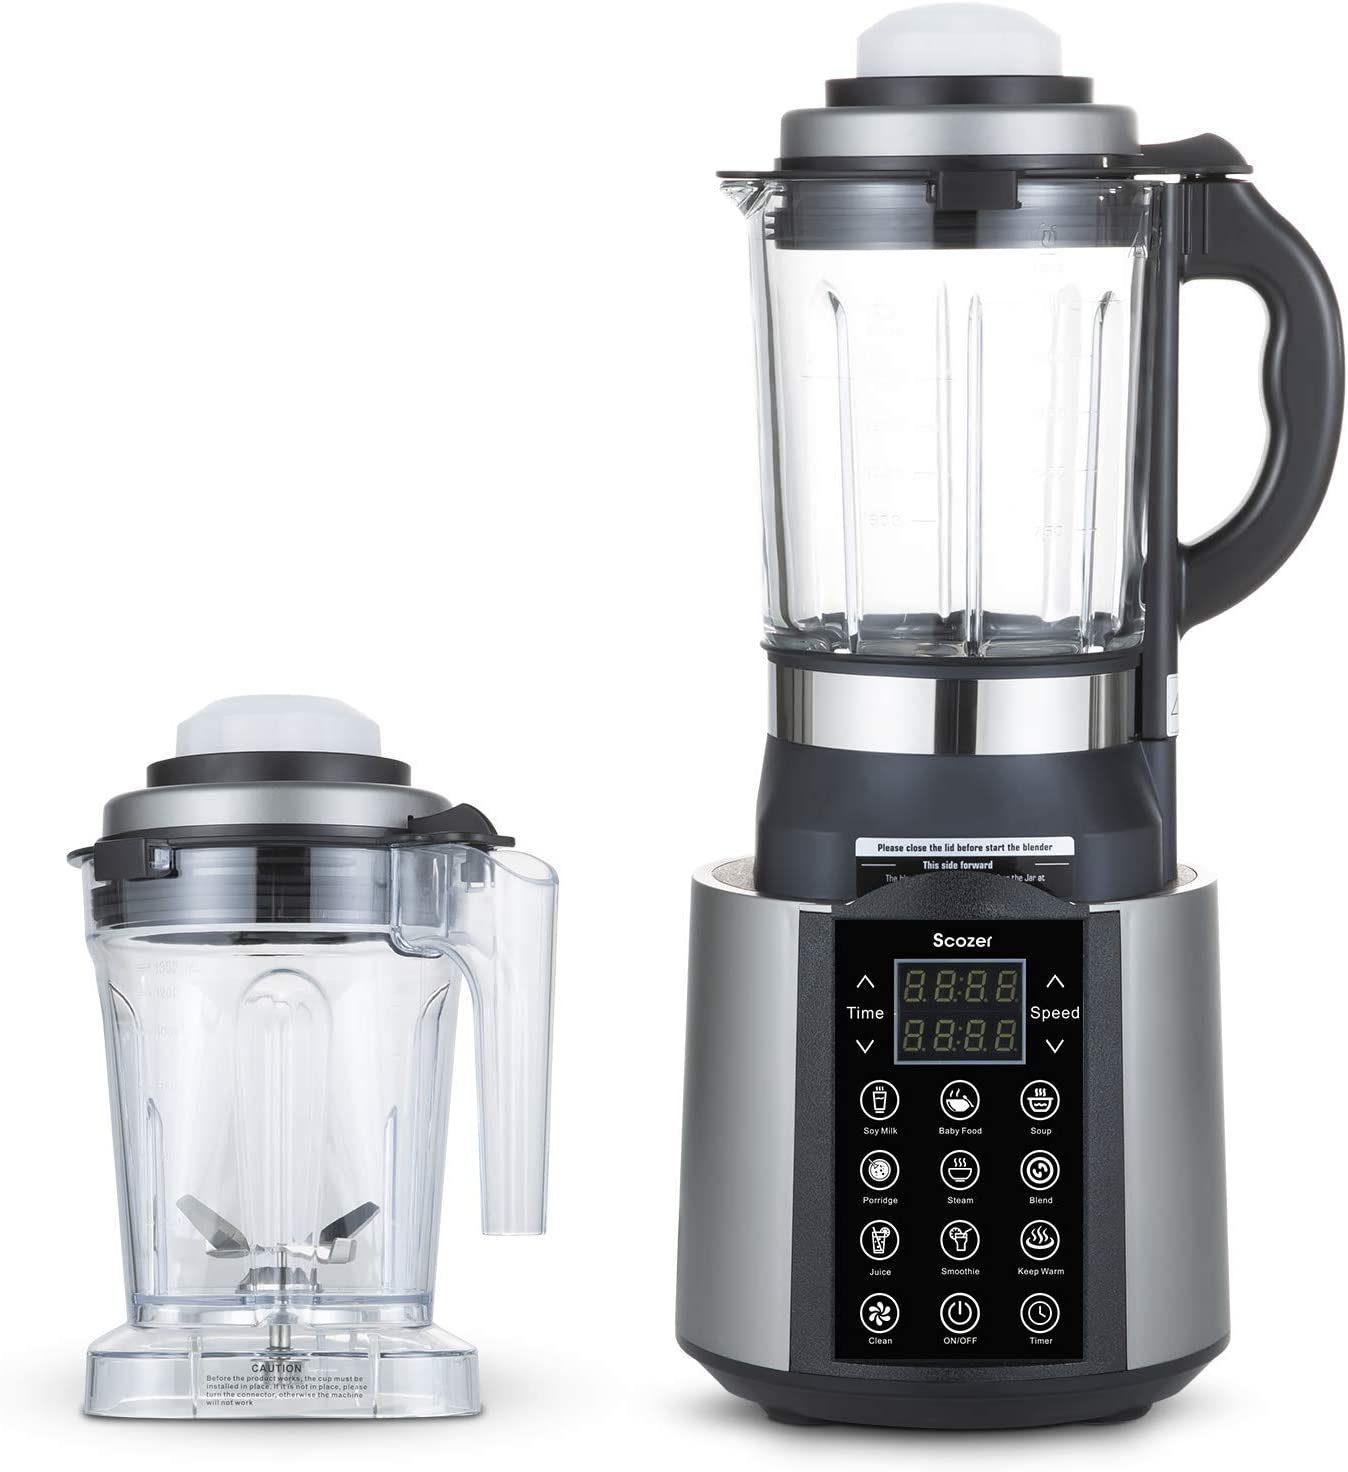 Countertop Blender, Scozer Cooking Blender, Hot and Cold, 9 One Touch Programs, 60 oz Glass Jar with One-Click Cleaning Function,800W Base with 2 Pitcher